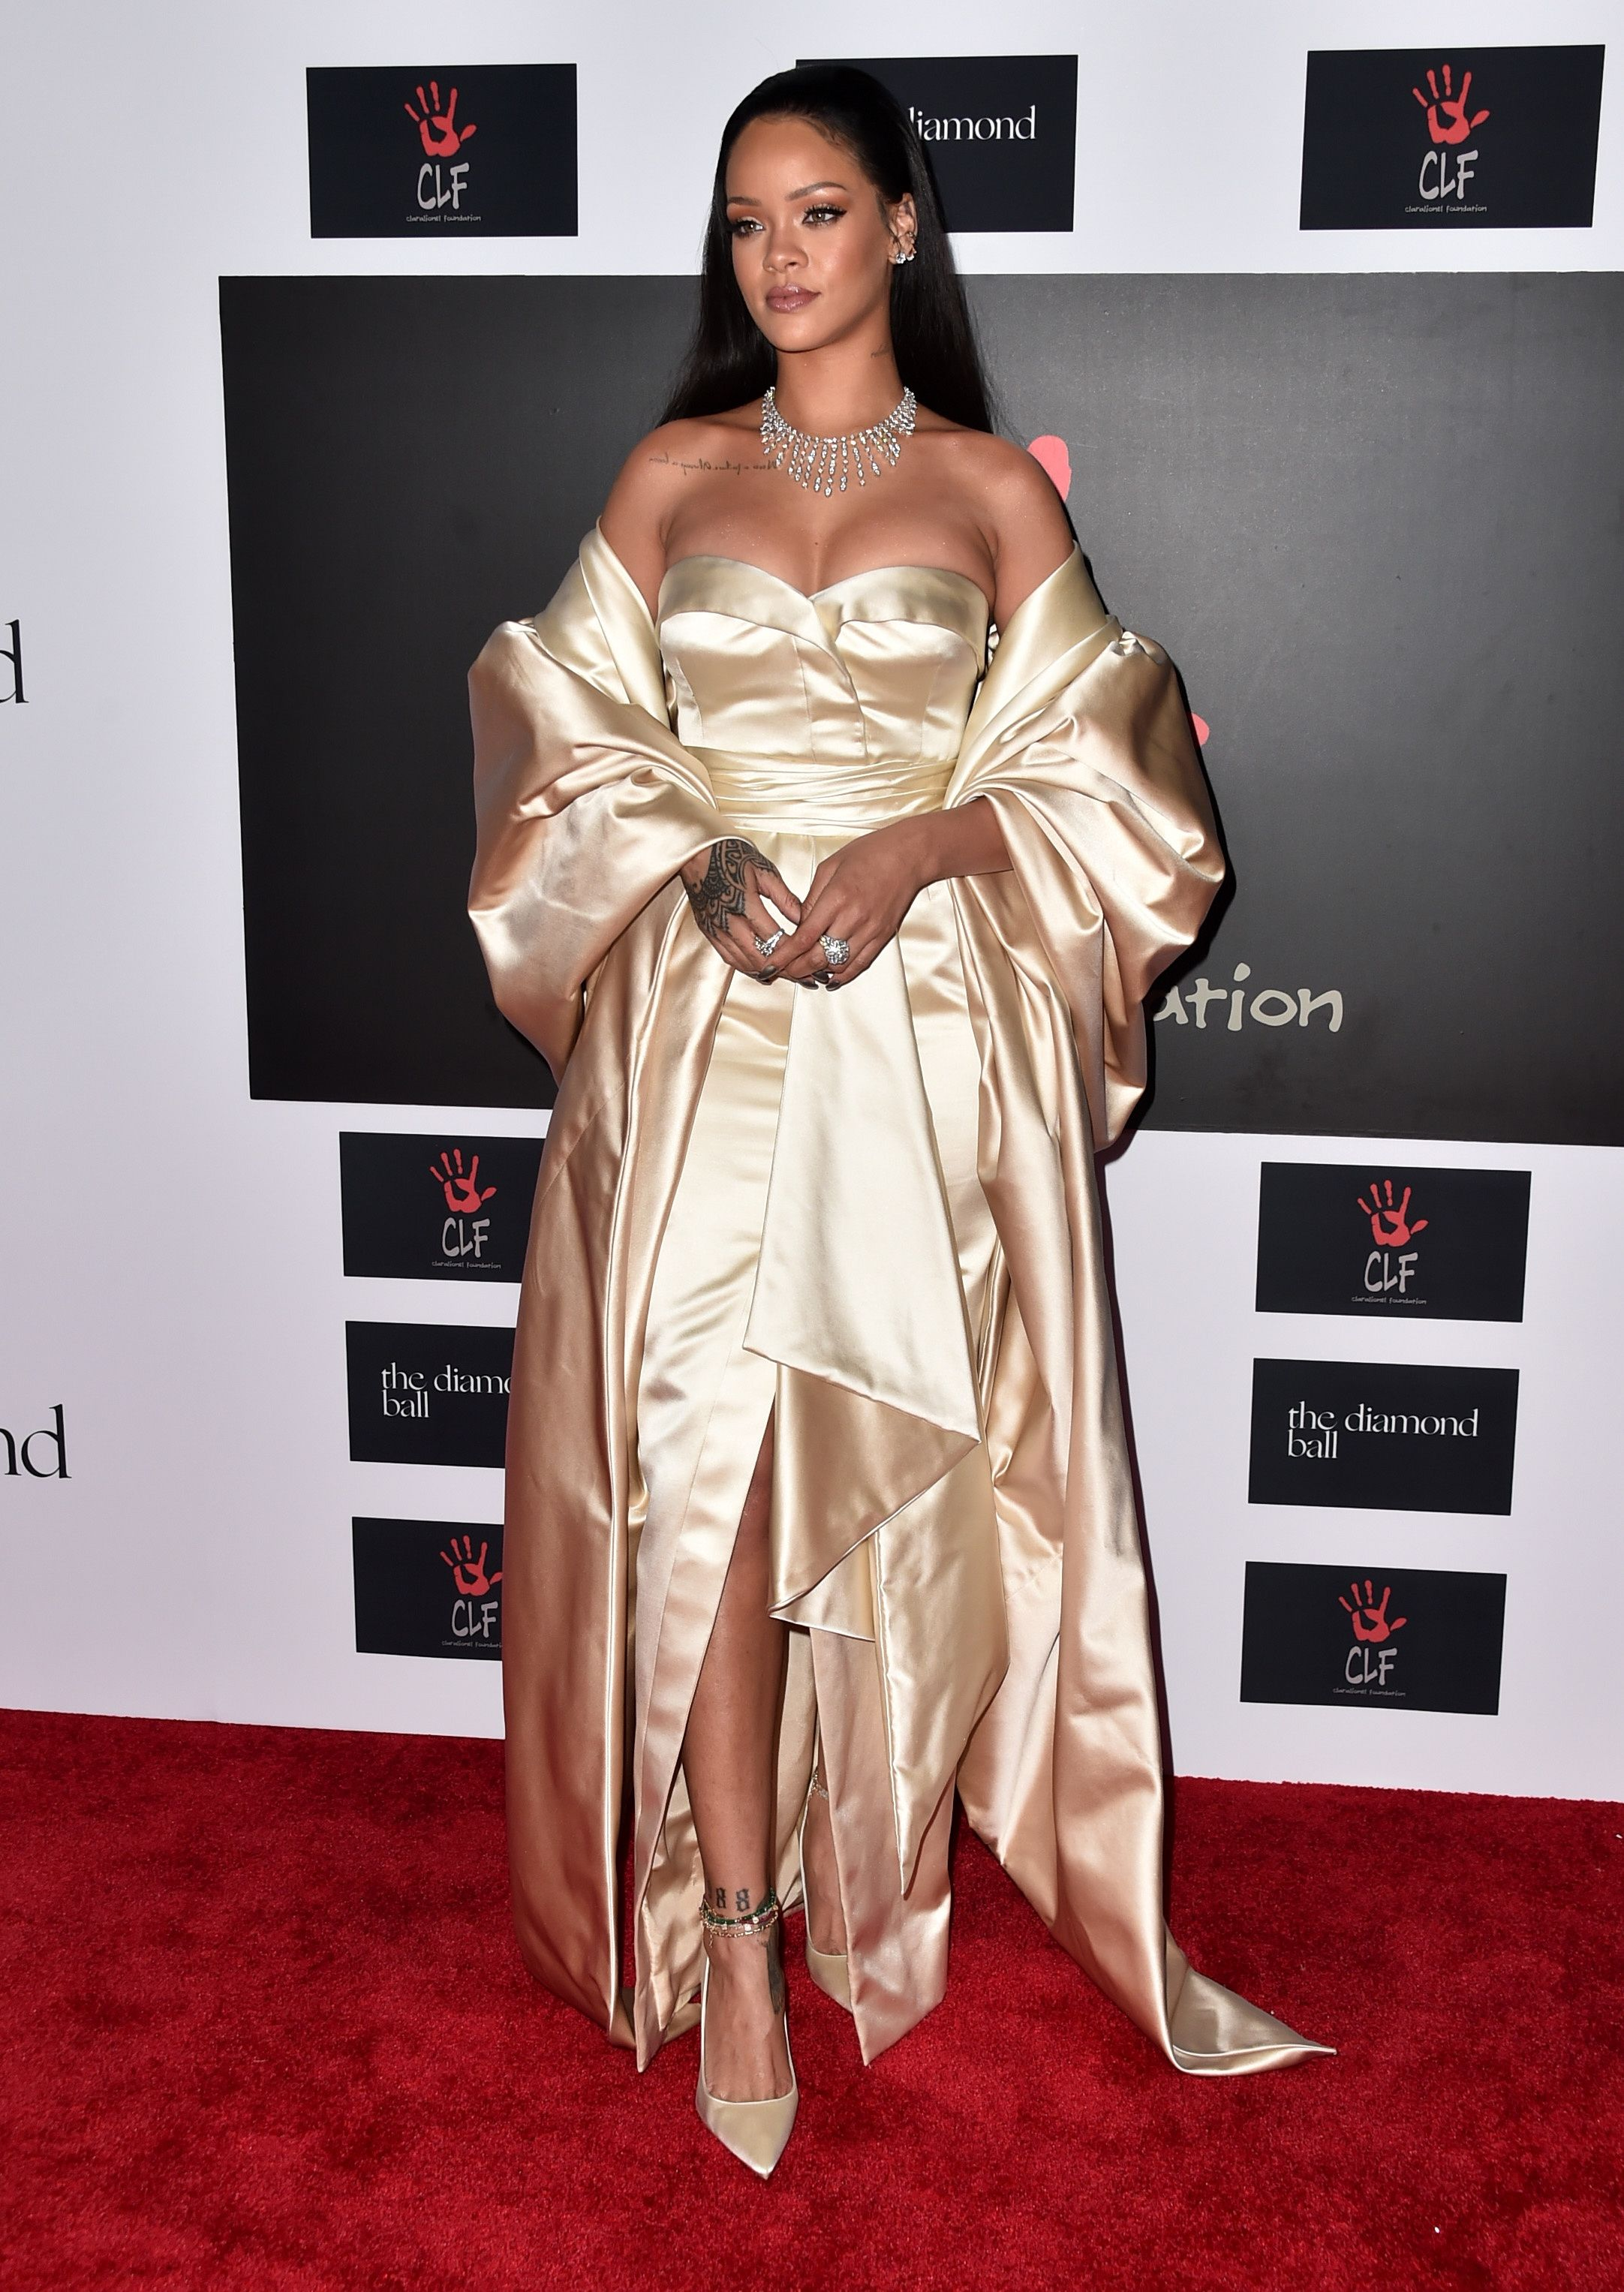 The Best Of Rihanna's Red Carpet Looks To Celebrate Her ...